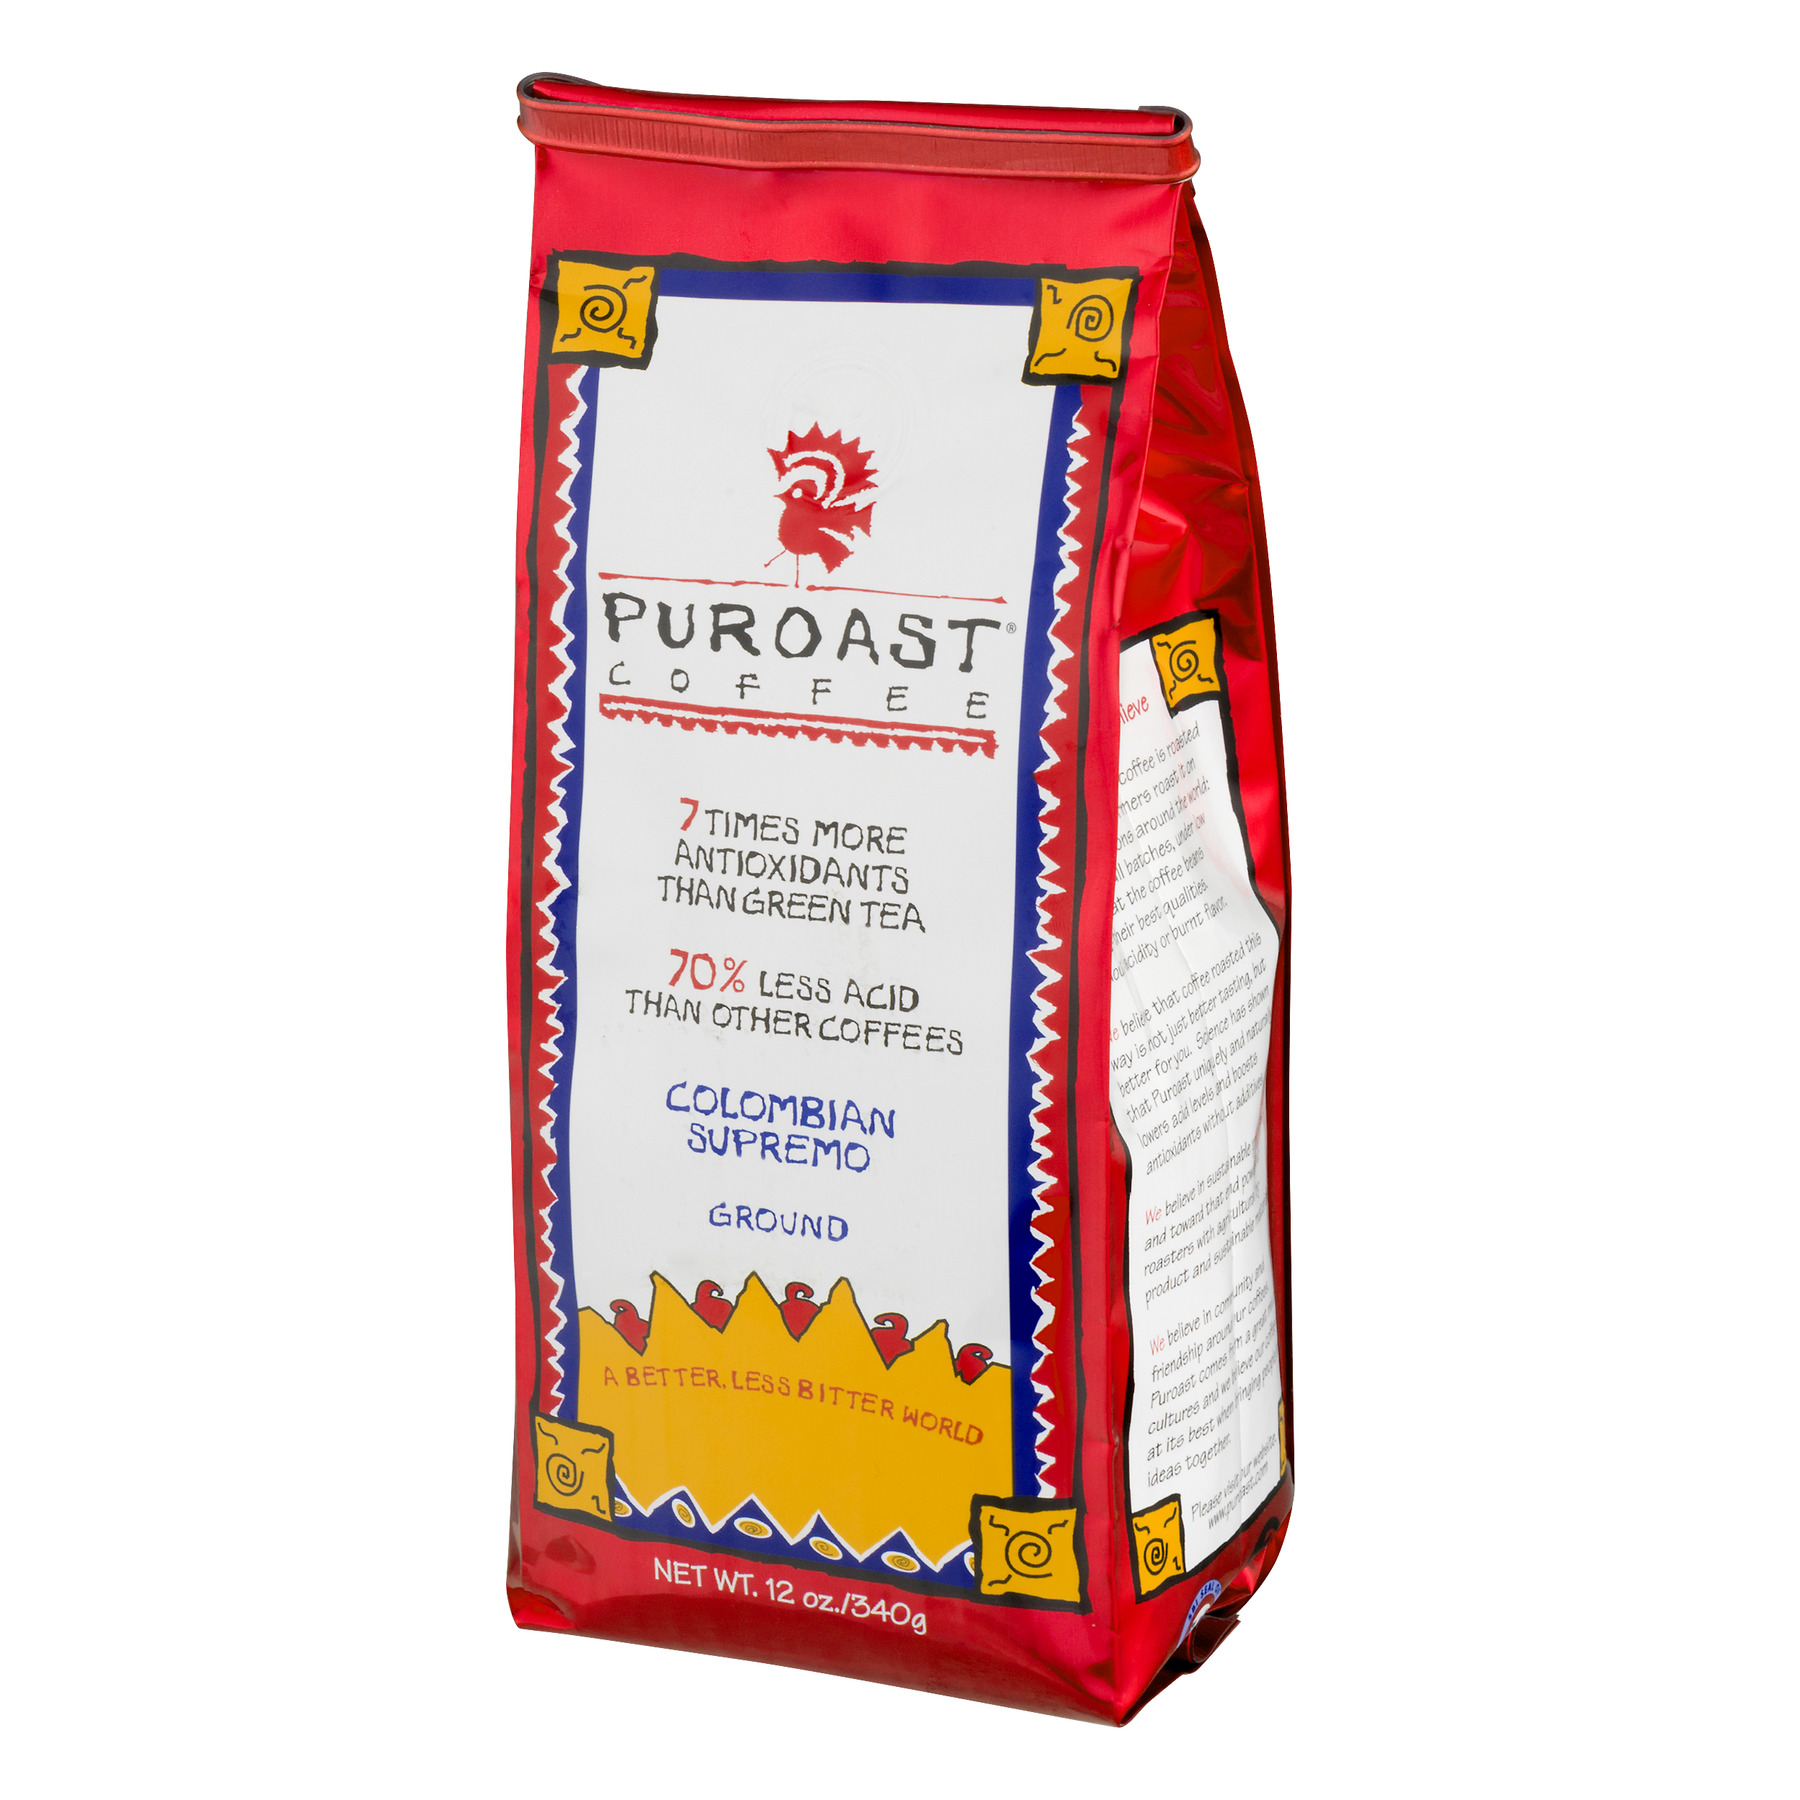 Puroast Coffee Ground Colombian Supremo, 12.0 OZ - Walmart.com